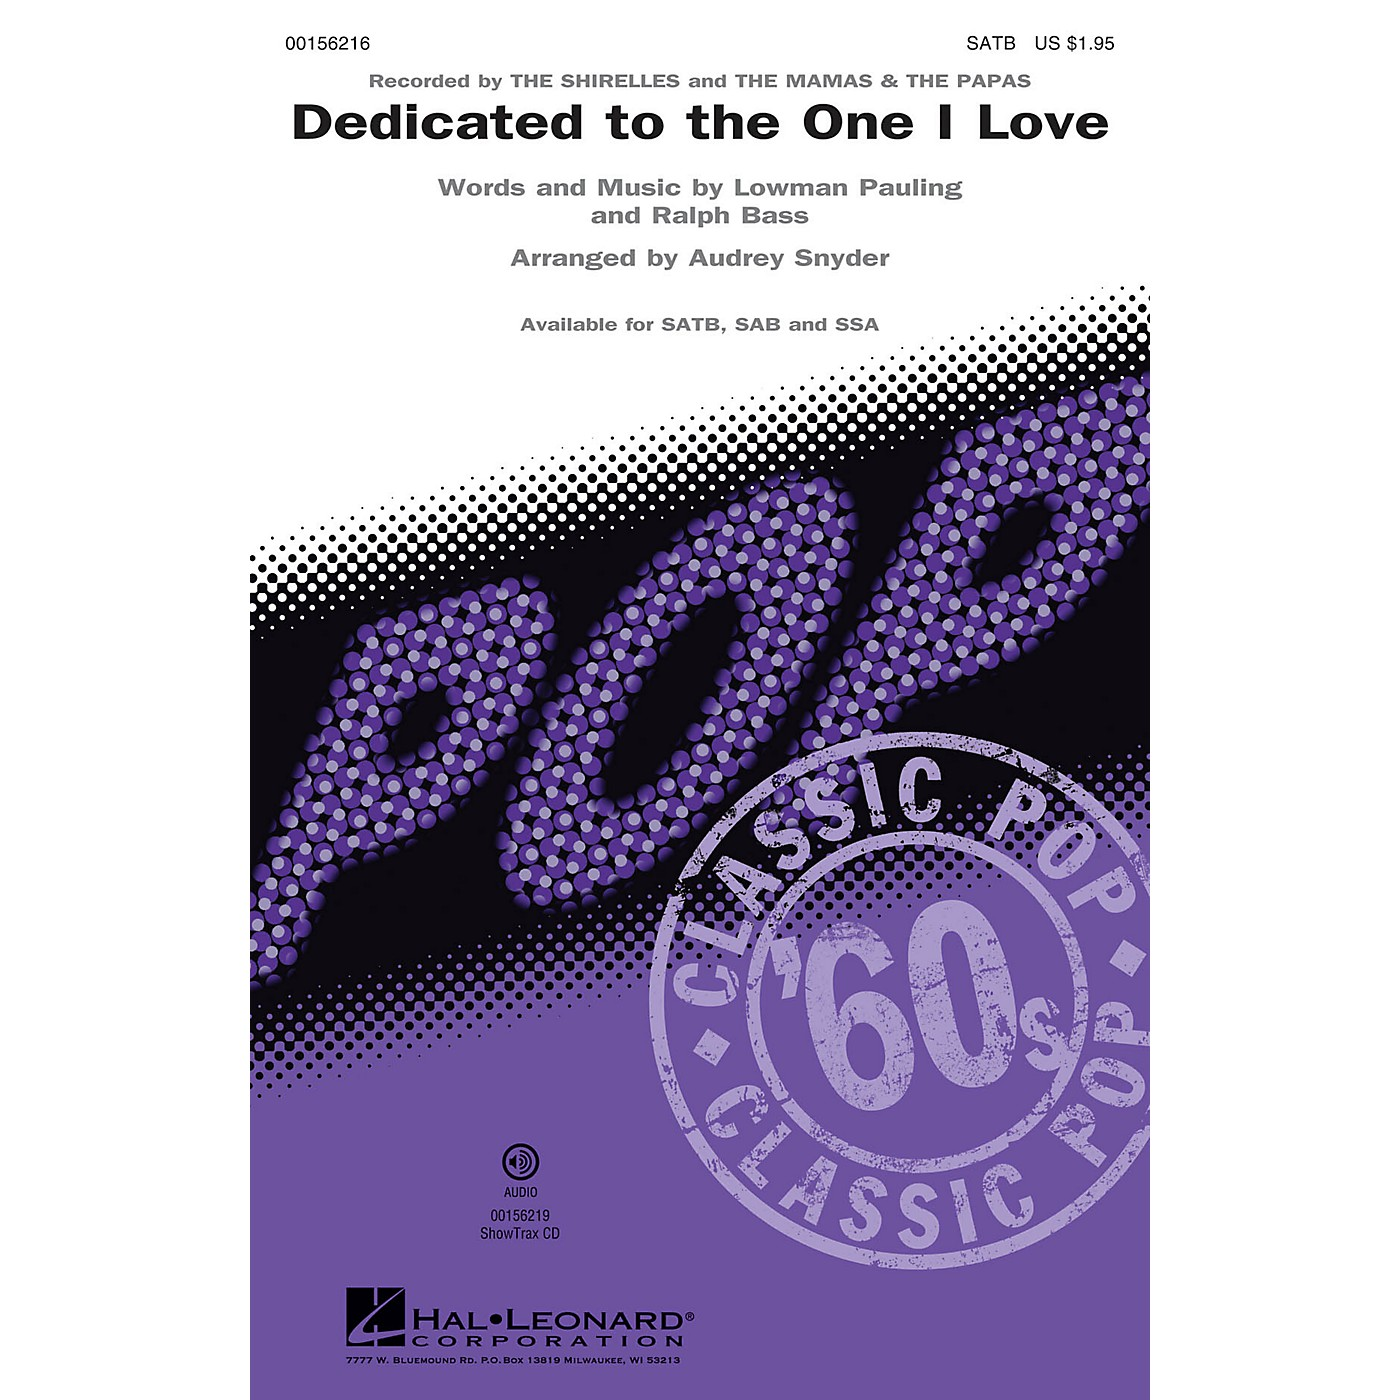 Hal Leonard Dedicated to the One I Love ShowTrax CD by The Mamas & the Papas and The Shirelles Arranged by Audrey Snyder thumbnail